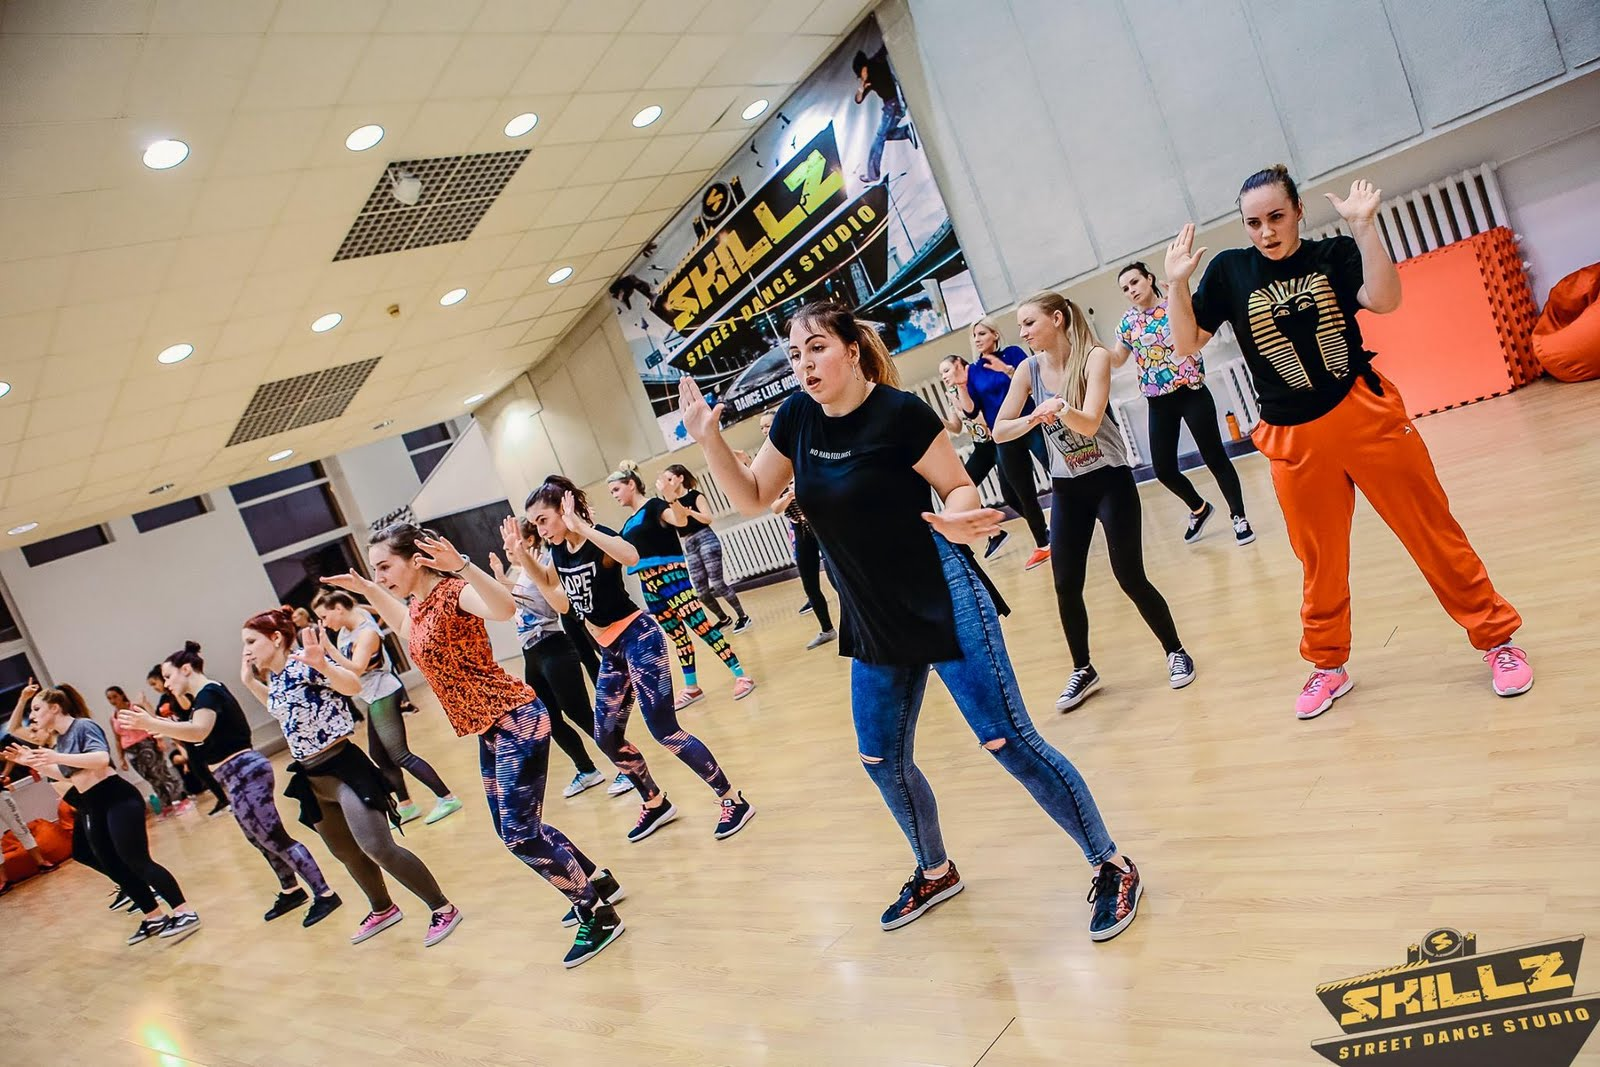 Dancehall workshop with Jiggy (France) - 37.jpg